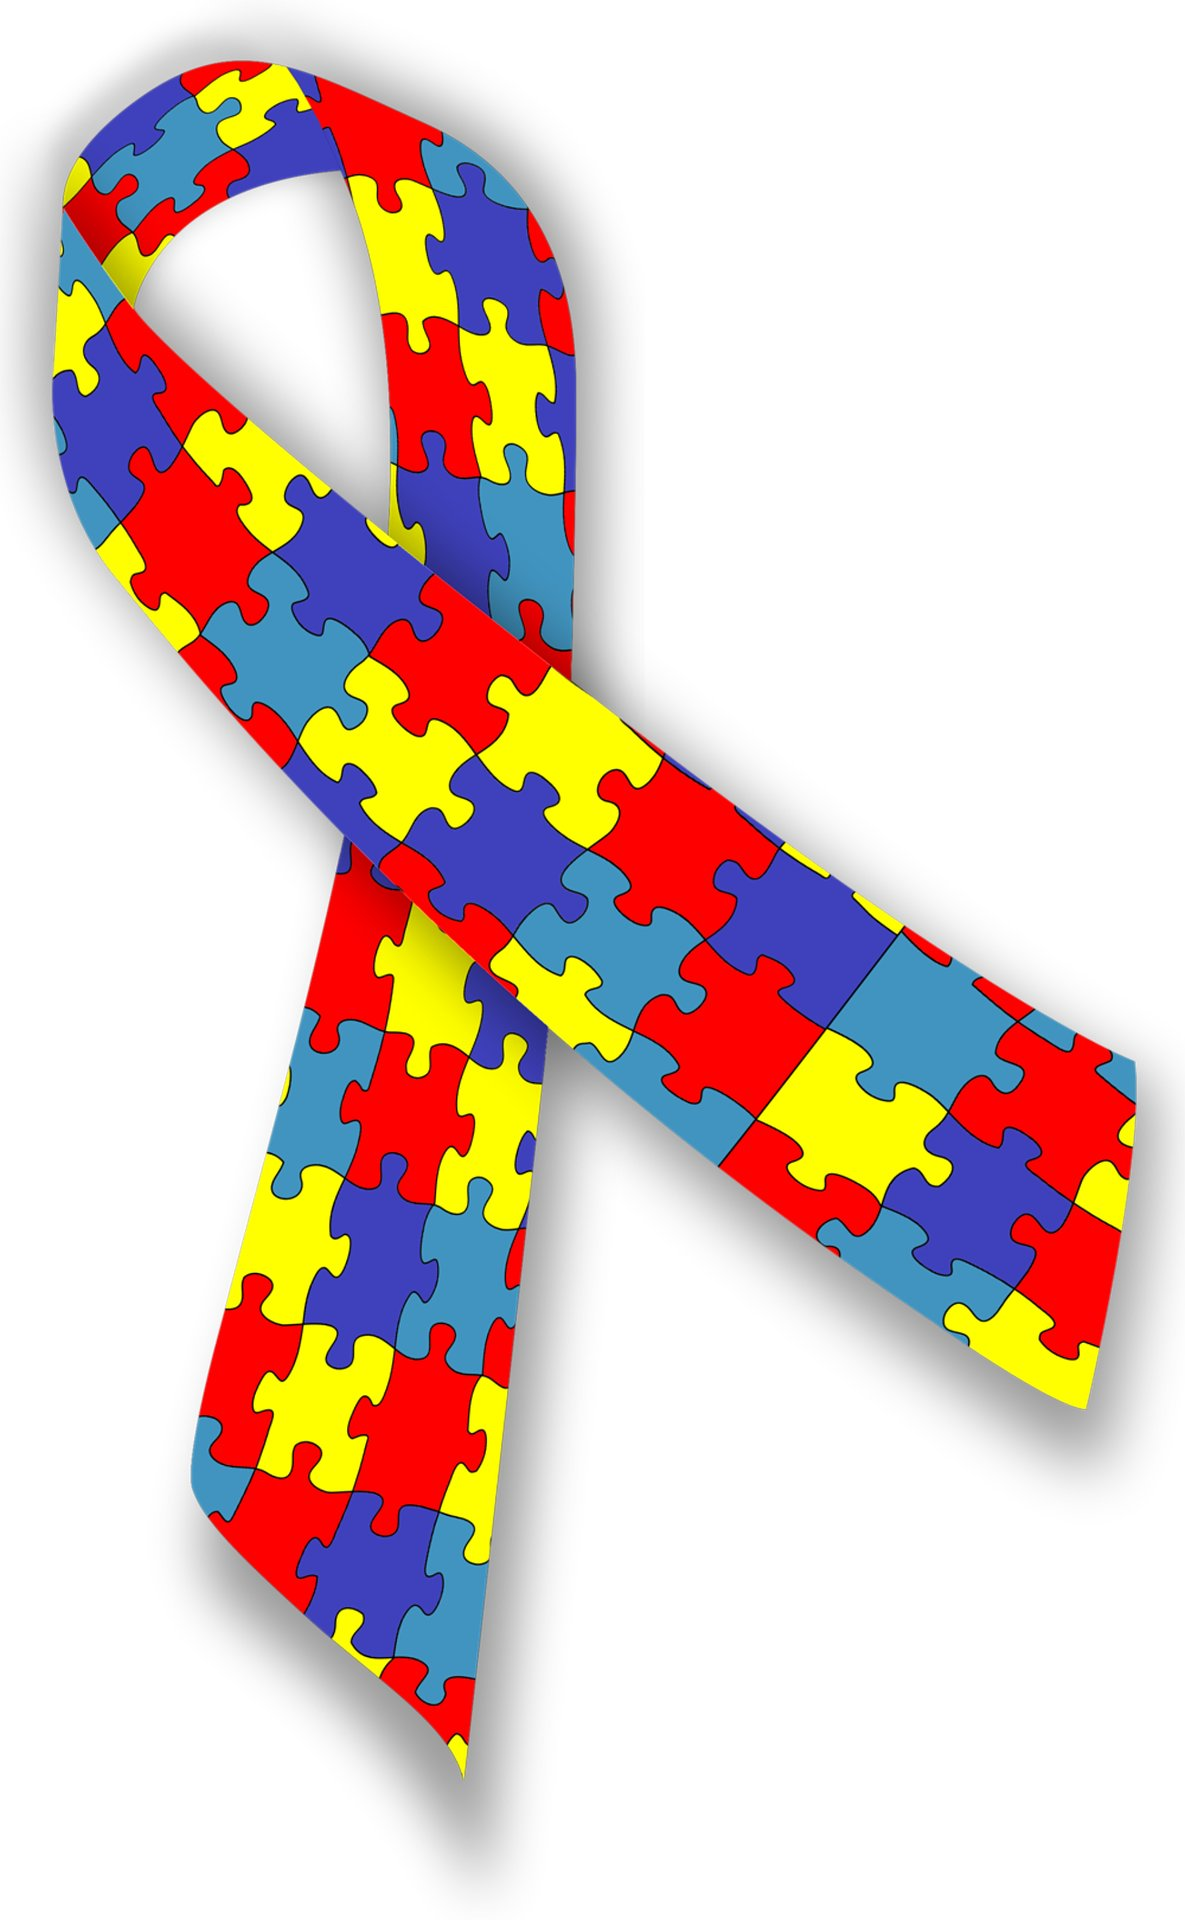 In Kids With Autism Short Questionnaire >> In Kids With Autism Short Questionnaire May Detect Gi Disorders